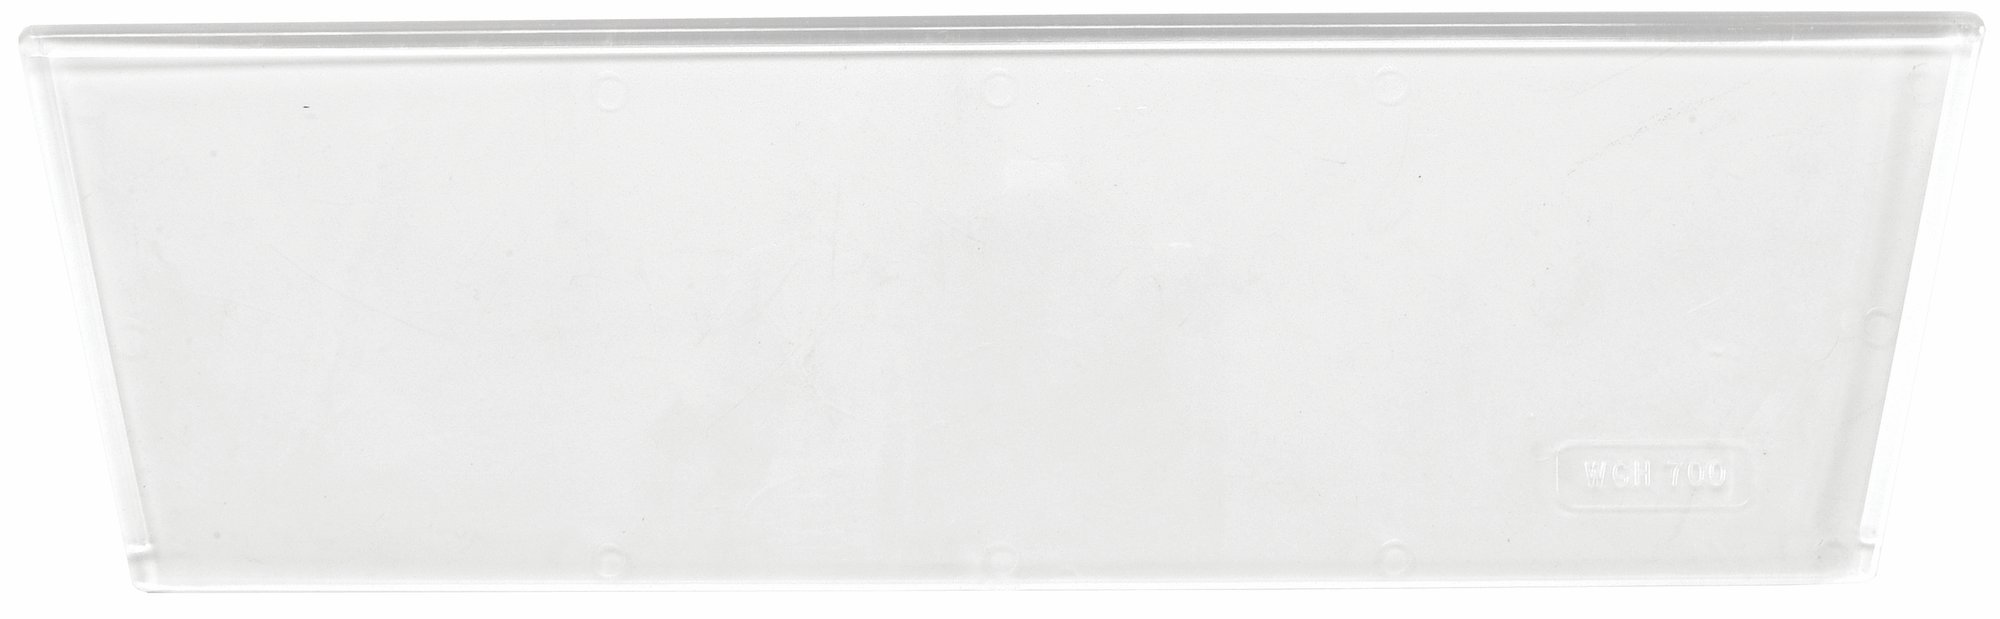 Quantum Storage Systems WGH700 Clear Window for Multi-Purpose Giant Stacking Open Hopper Containers, 3'' x 2'' (Pack of 3)